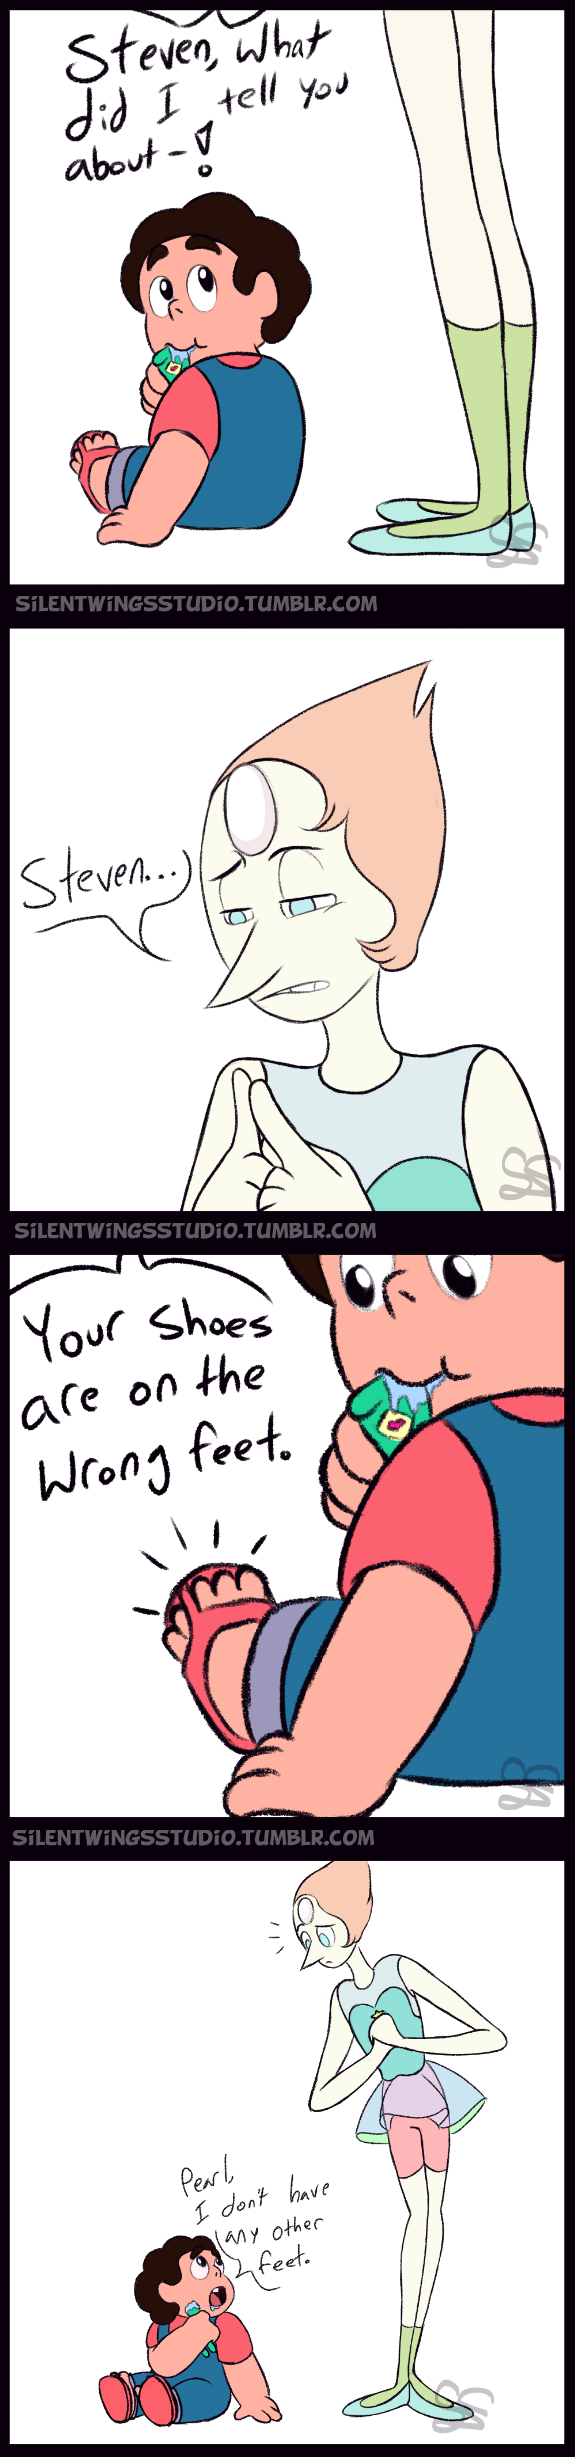 steven universe comic wrong feet by sigma the enigma on deviantart